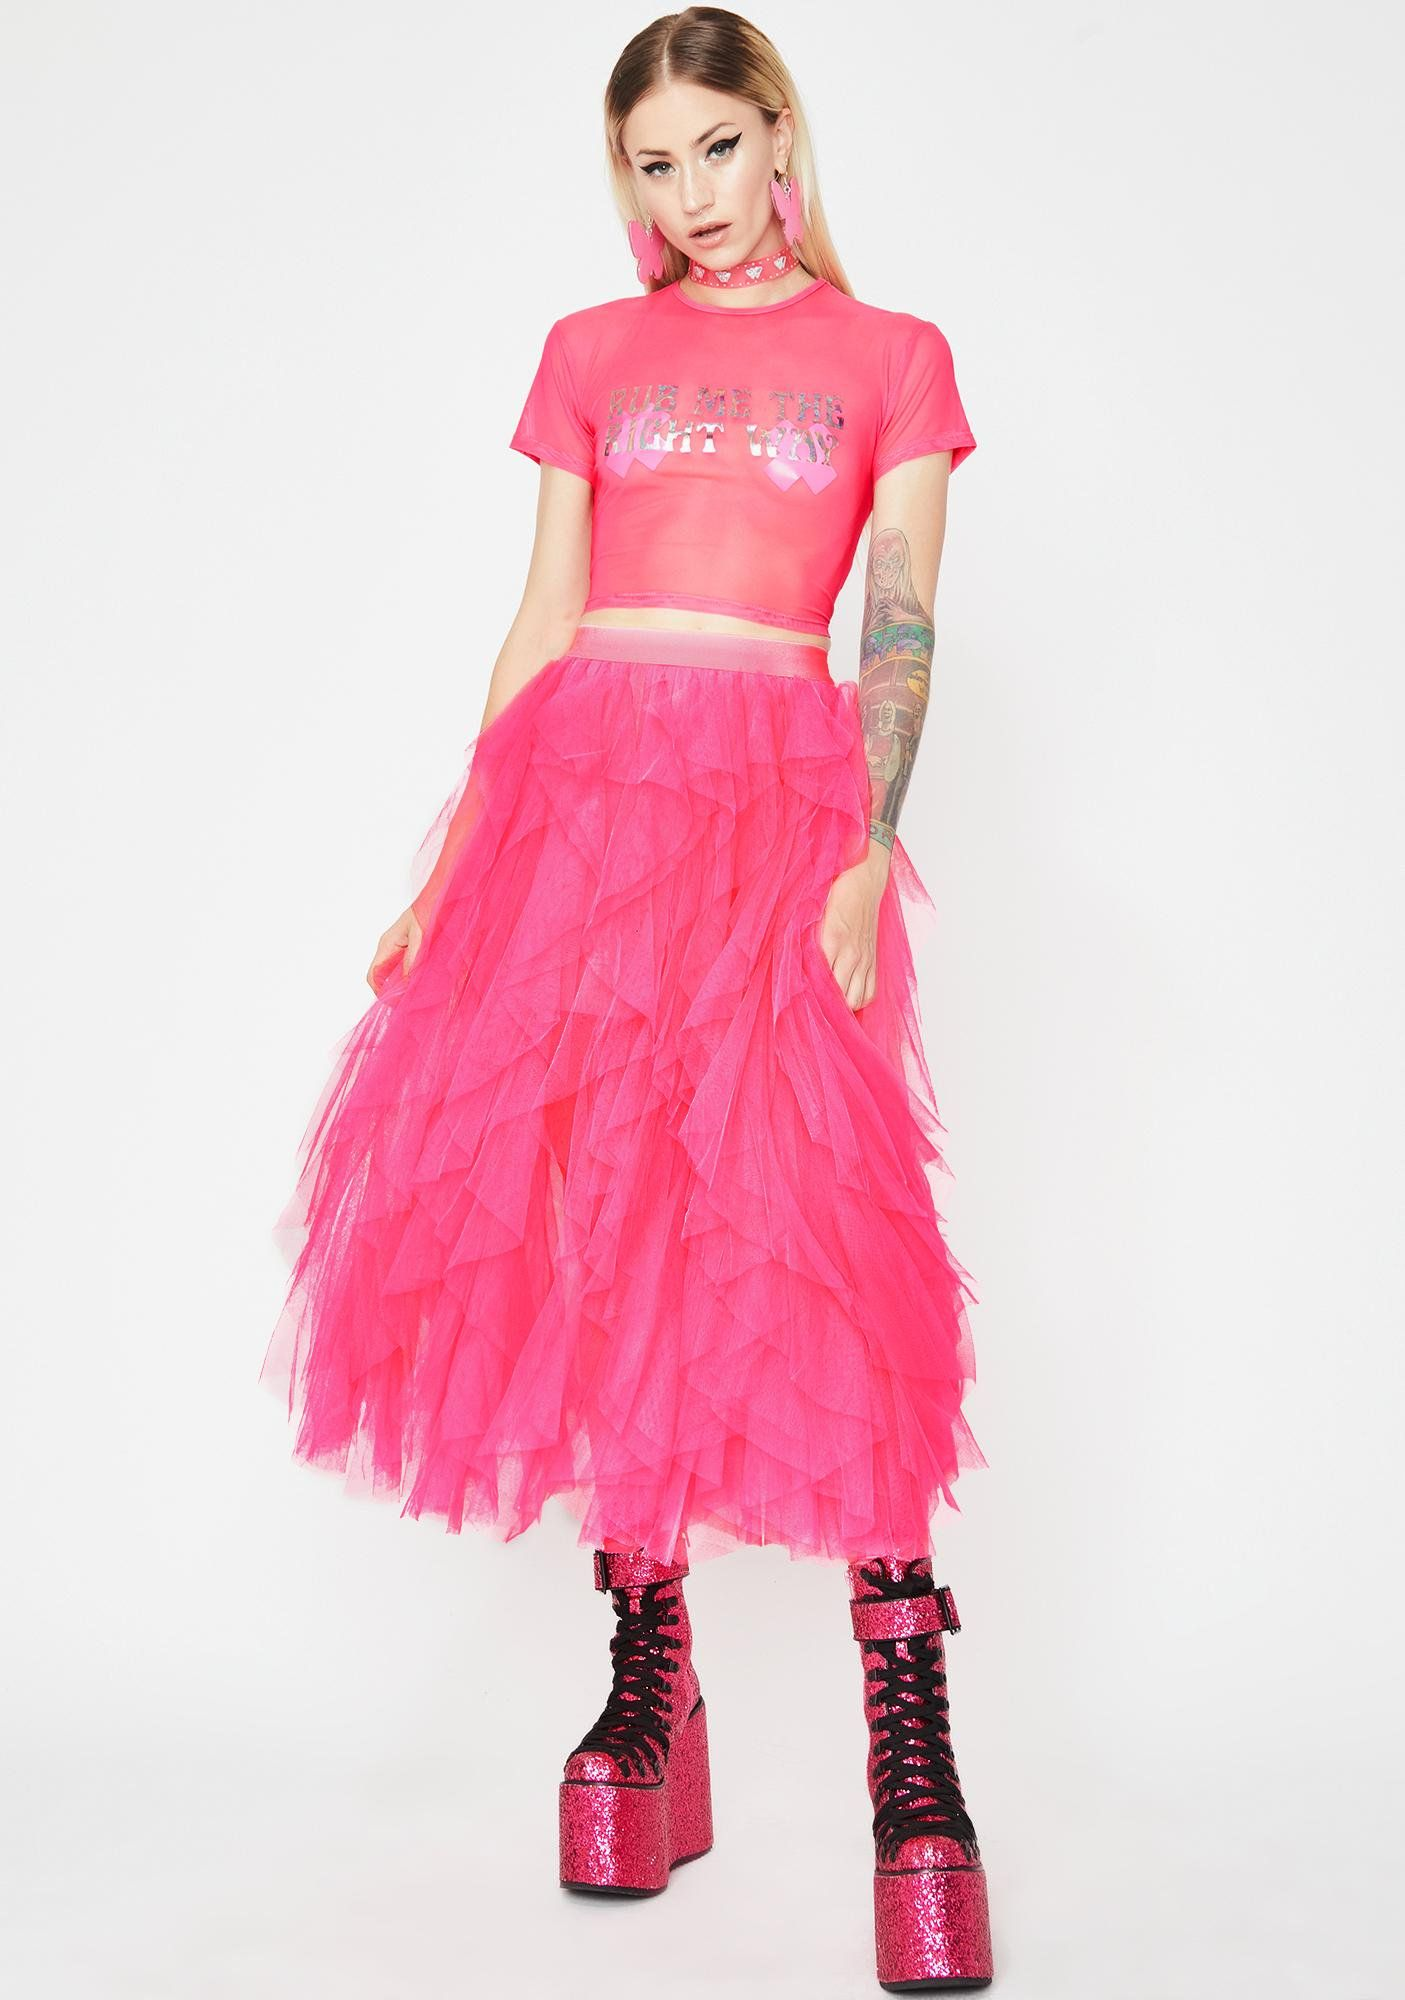 7d2dd1f2d Pixie Dreams Tulle Skirt in 2019 | fashion | Skirts, Tulle, Sheer ...